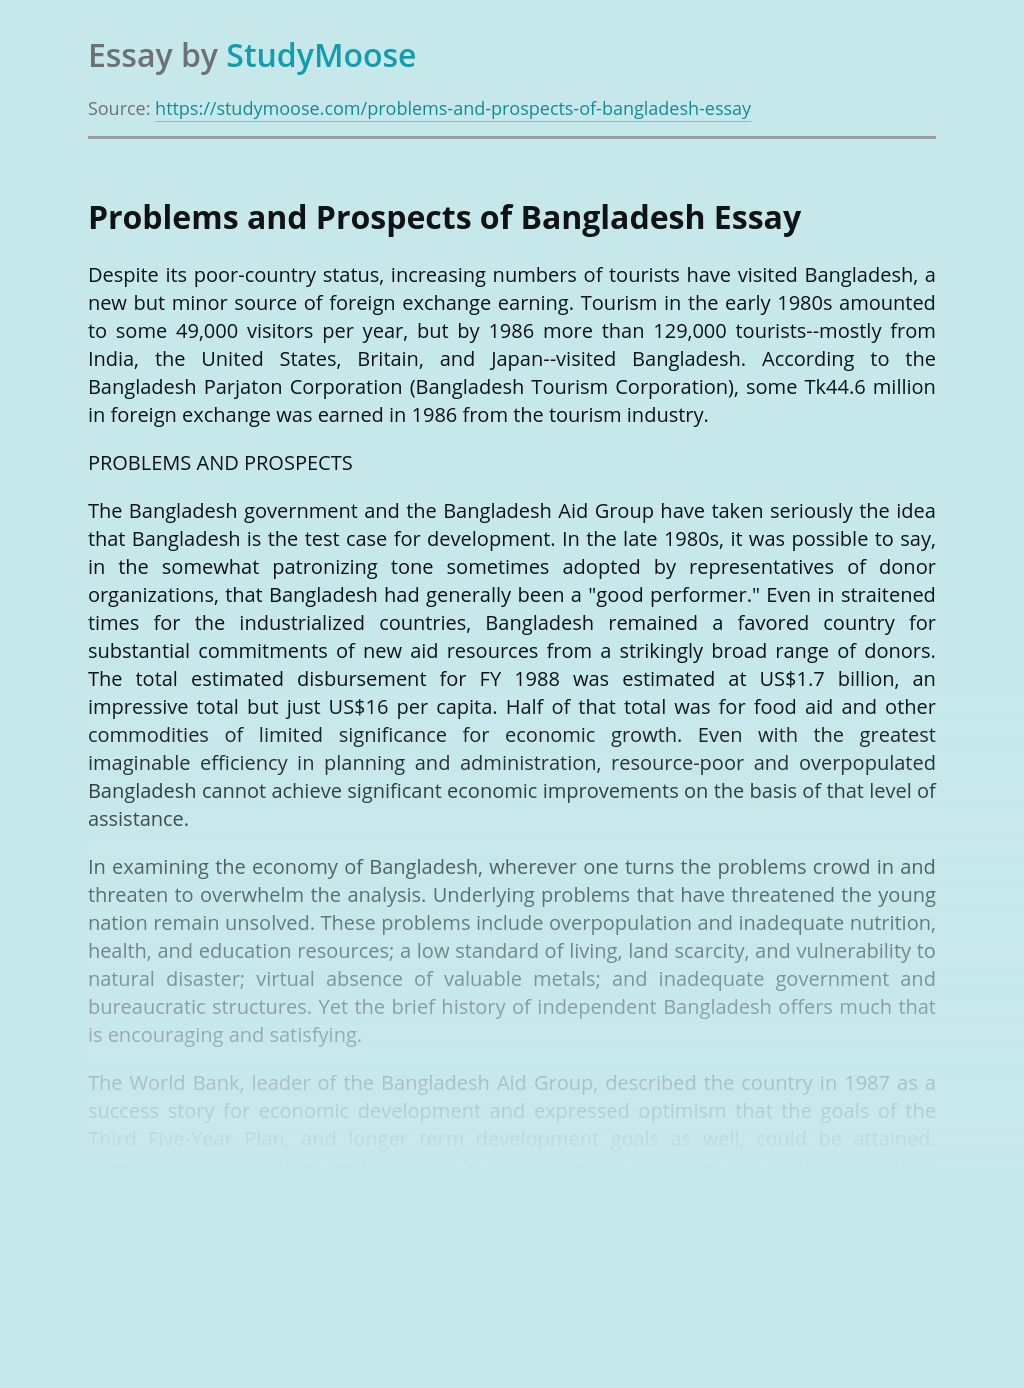 Problems and Prospects of Bangladesh